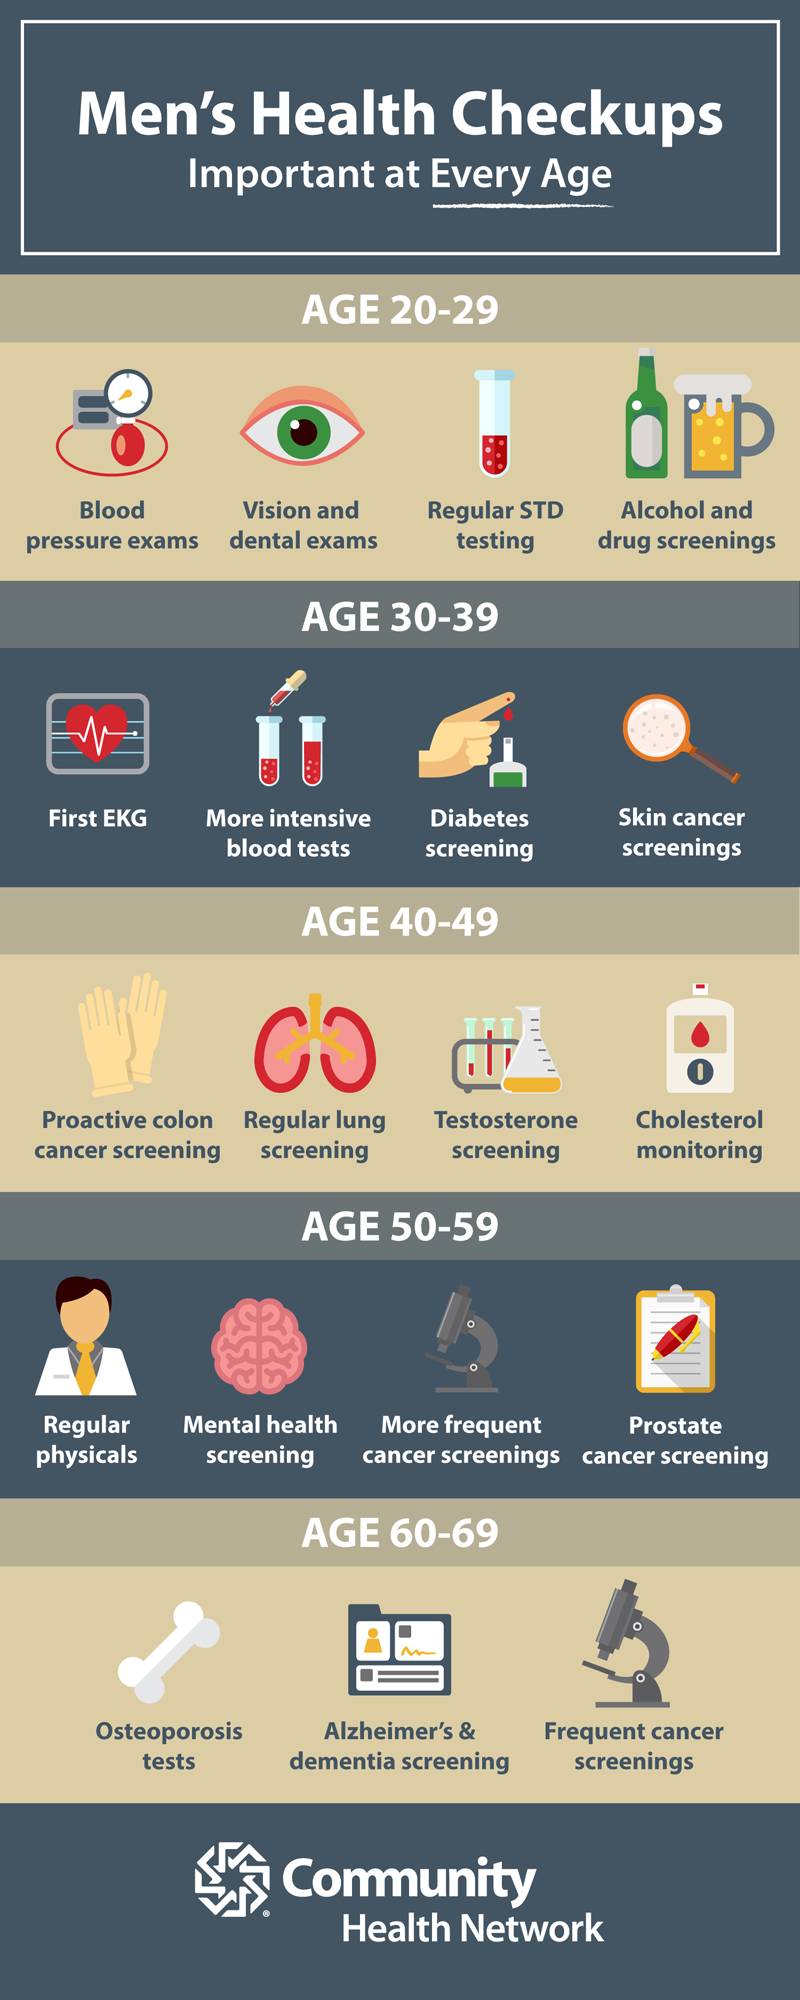 Men's Health Checkups Infographic